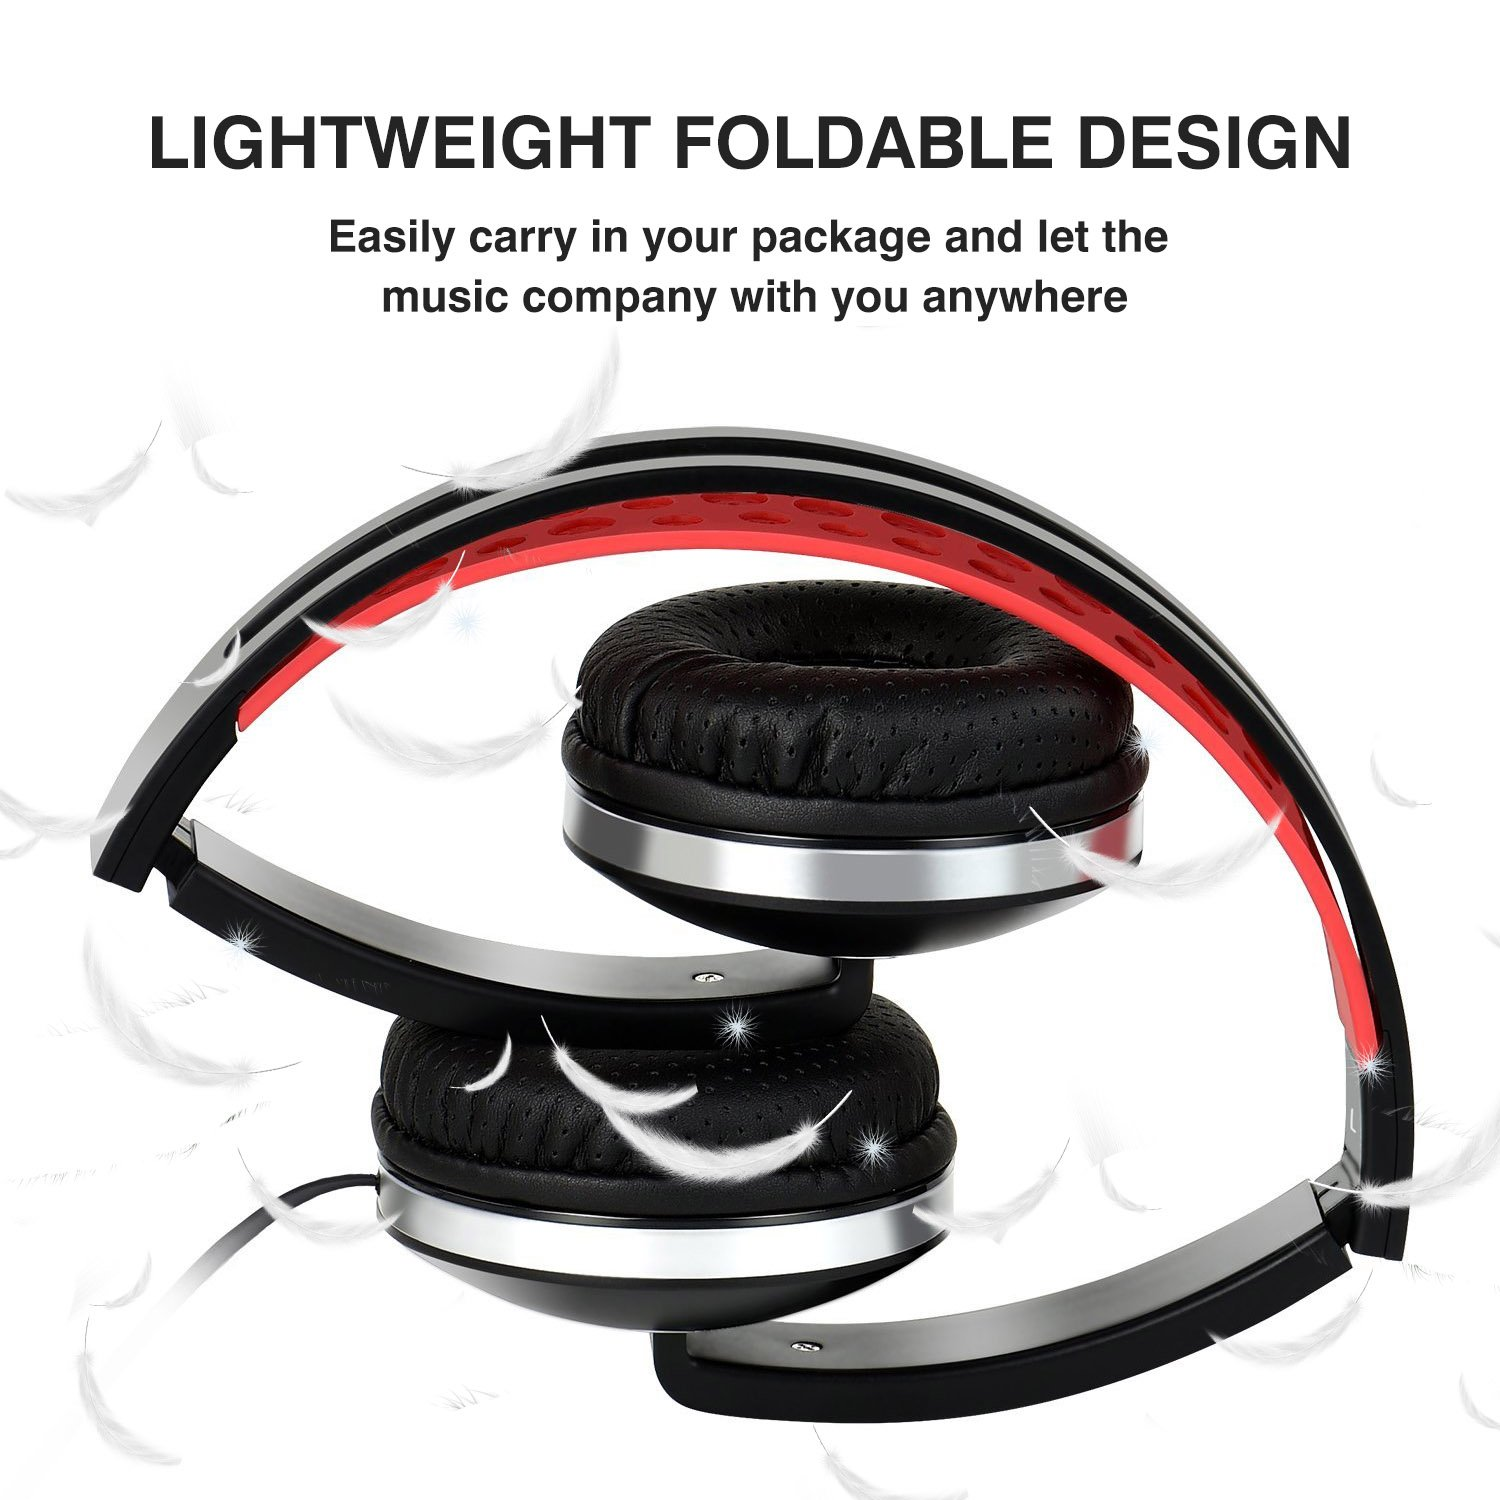 Over Ear Headphones, Lightweight Foldable Headphones with Microphone Stereo Bass Adjustable PC Headset Wired Flat Cord Headphone with Volume Control for Sport Workout Gym for Smartphones Laptop by Fujack (Image #2)